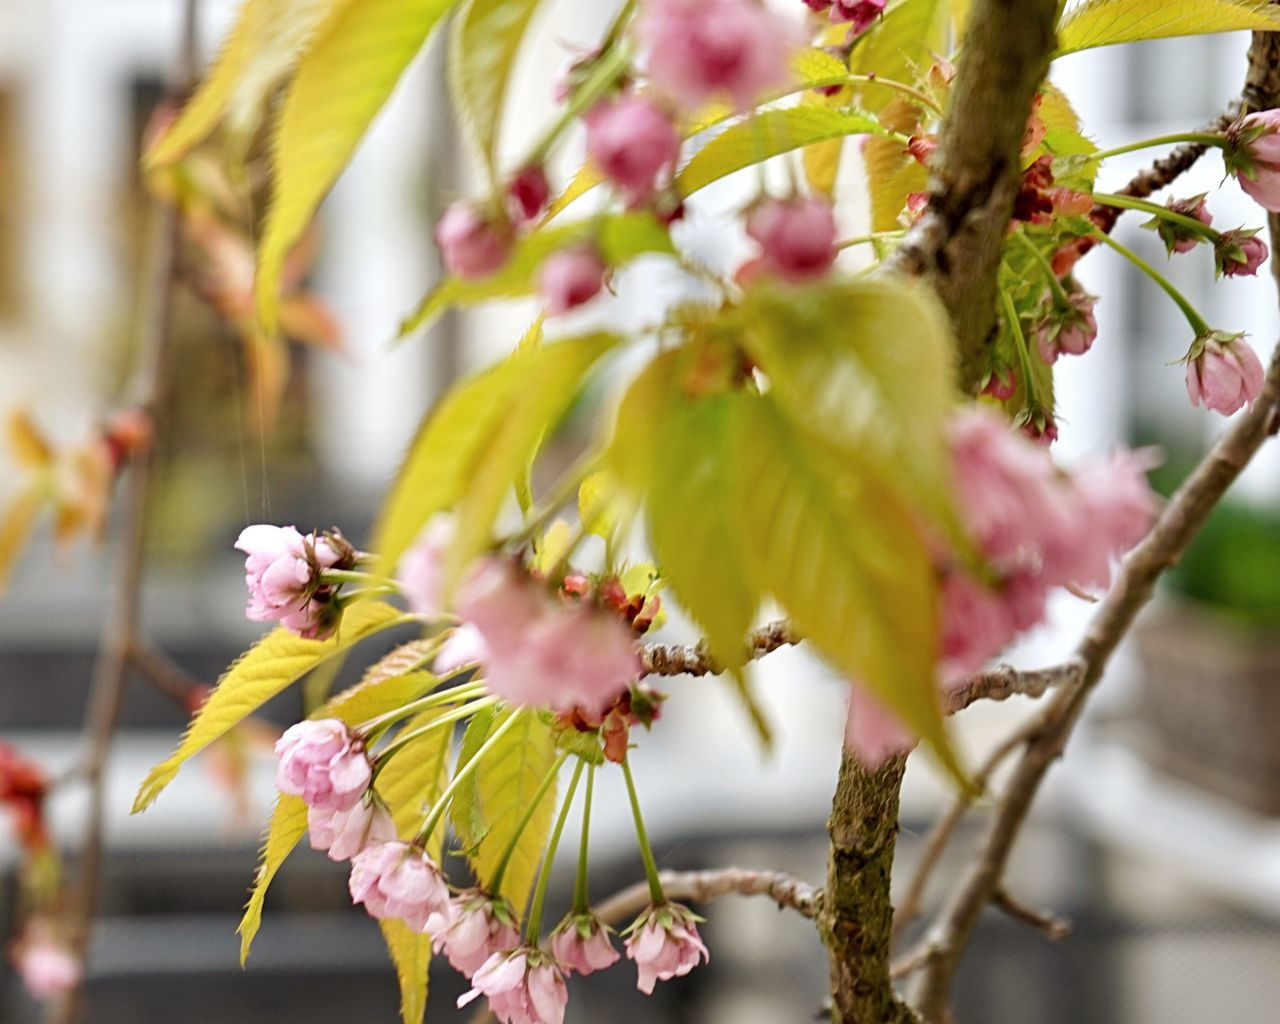 flower, fragility, growth, beauty in nature, petal, blossom, close-up, nature, freshness, day, springtime, no people, pink color, focus on foreground, branch, flower head, outdoors, tree, blooming